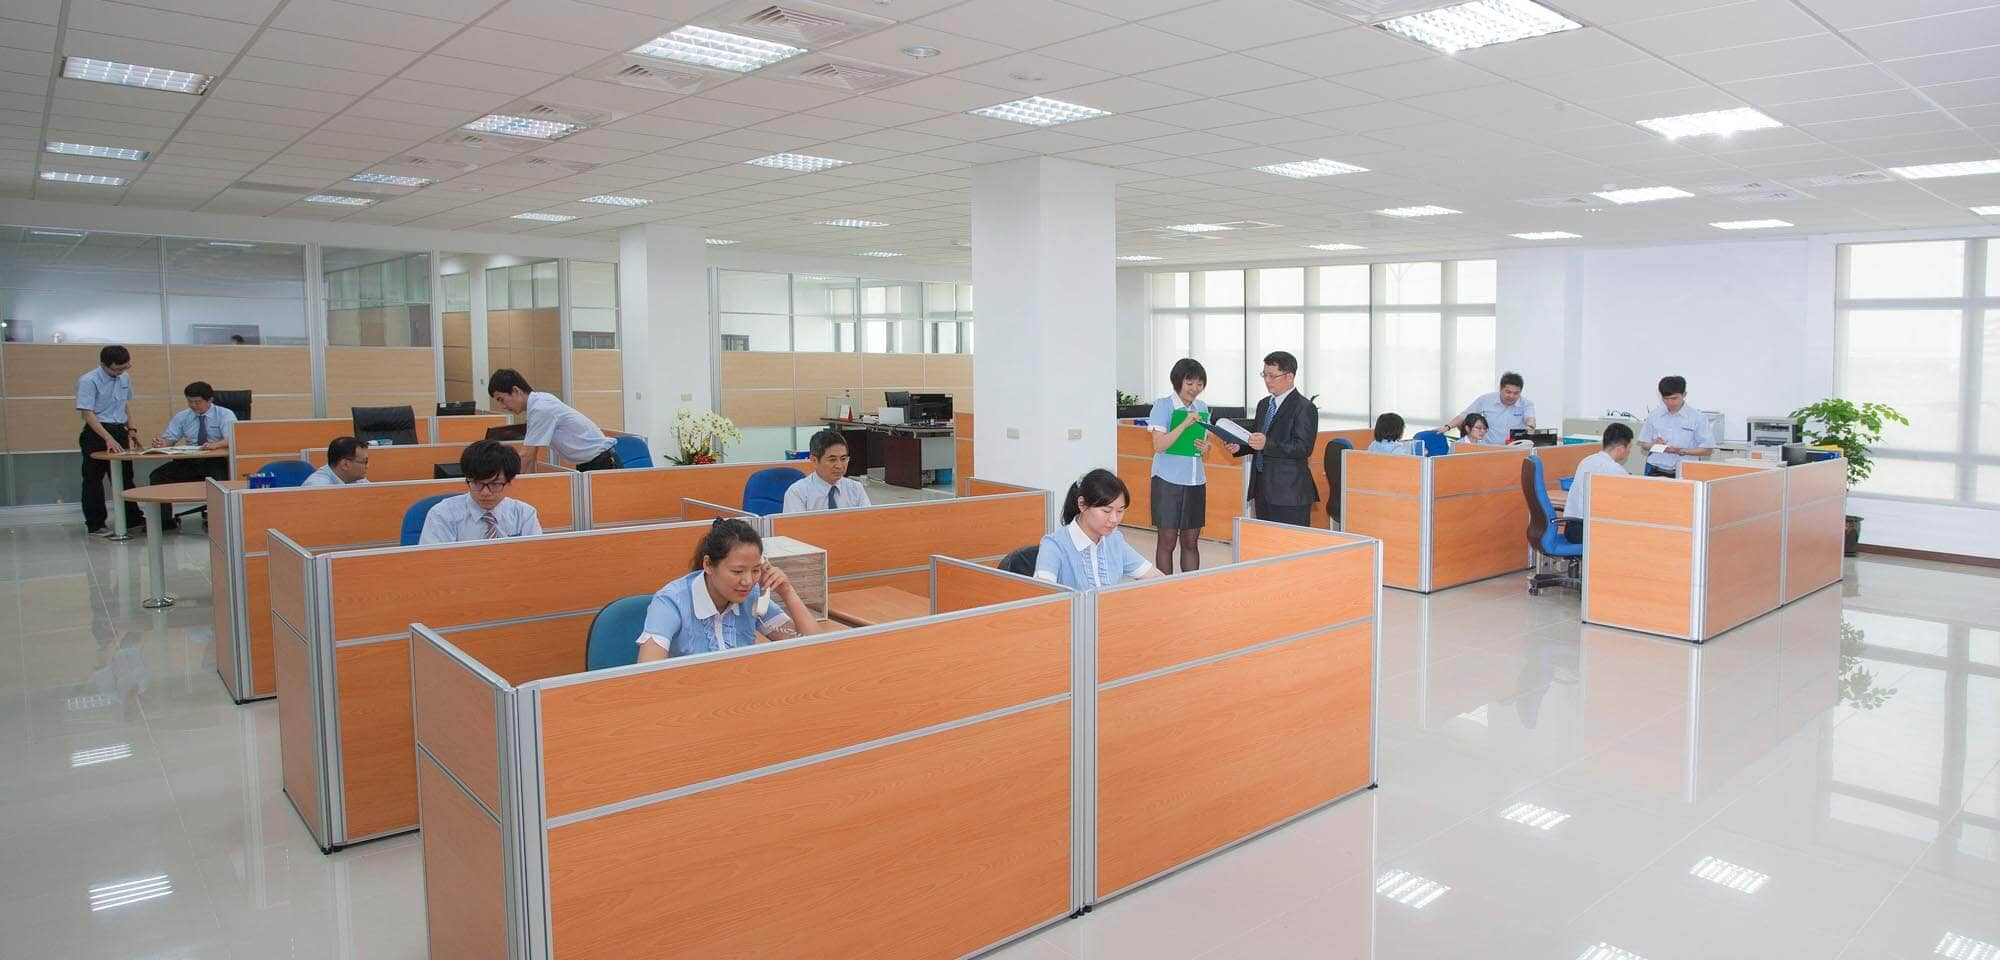 Excetek employees go to work